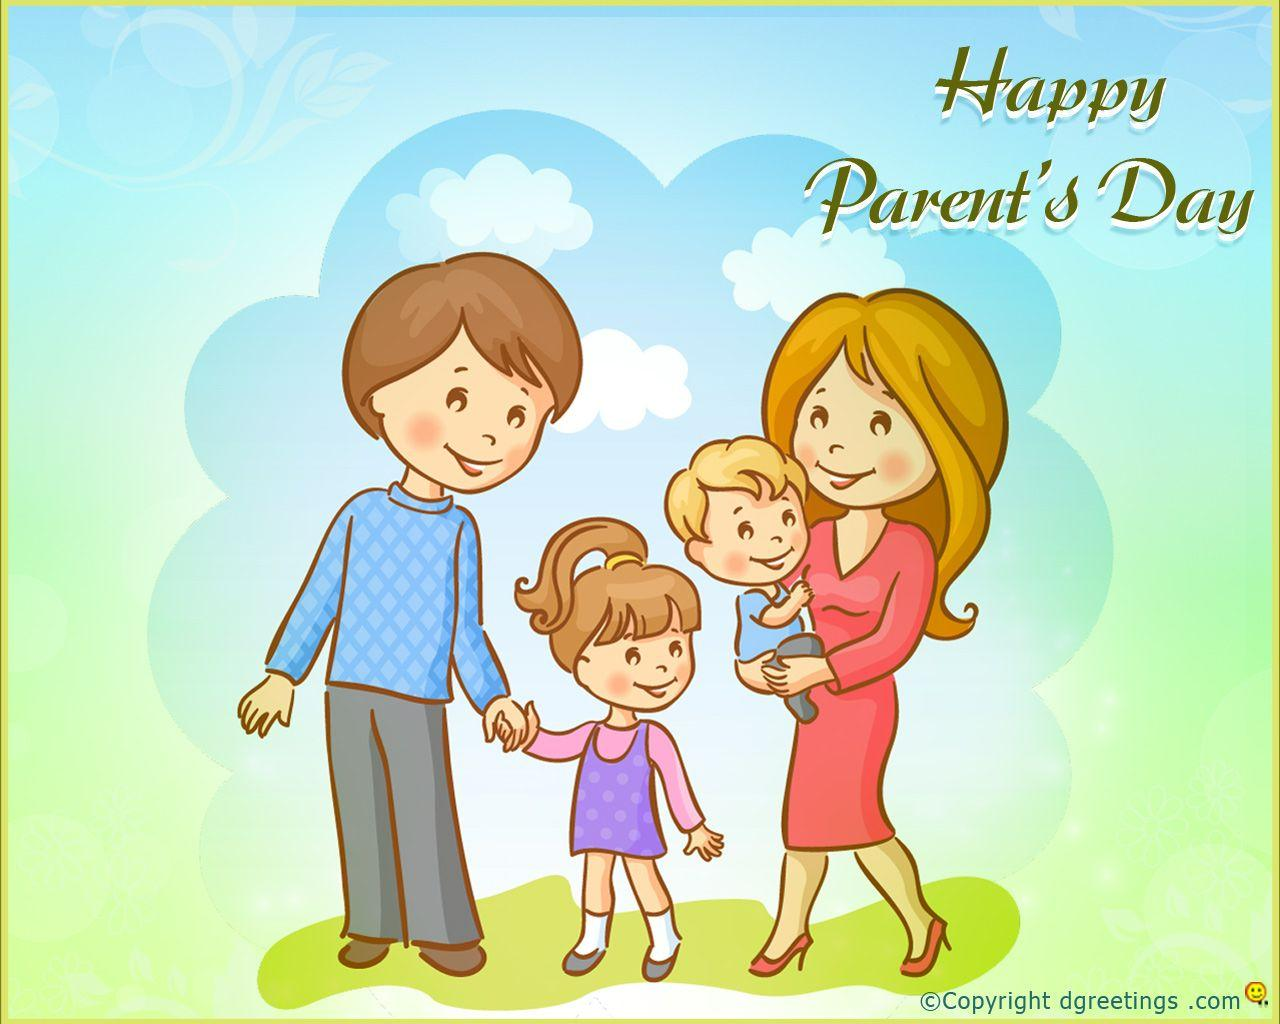 Happy parents day 2015 images ~ Greetings Wishes Images